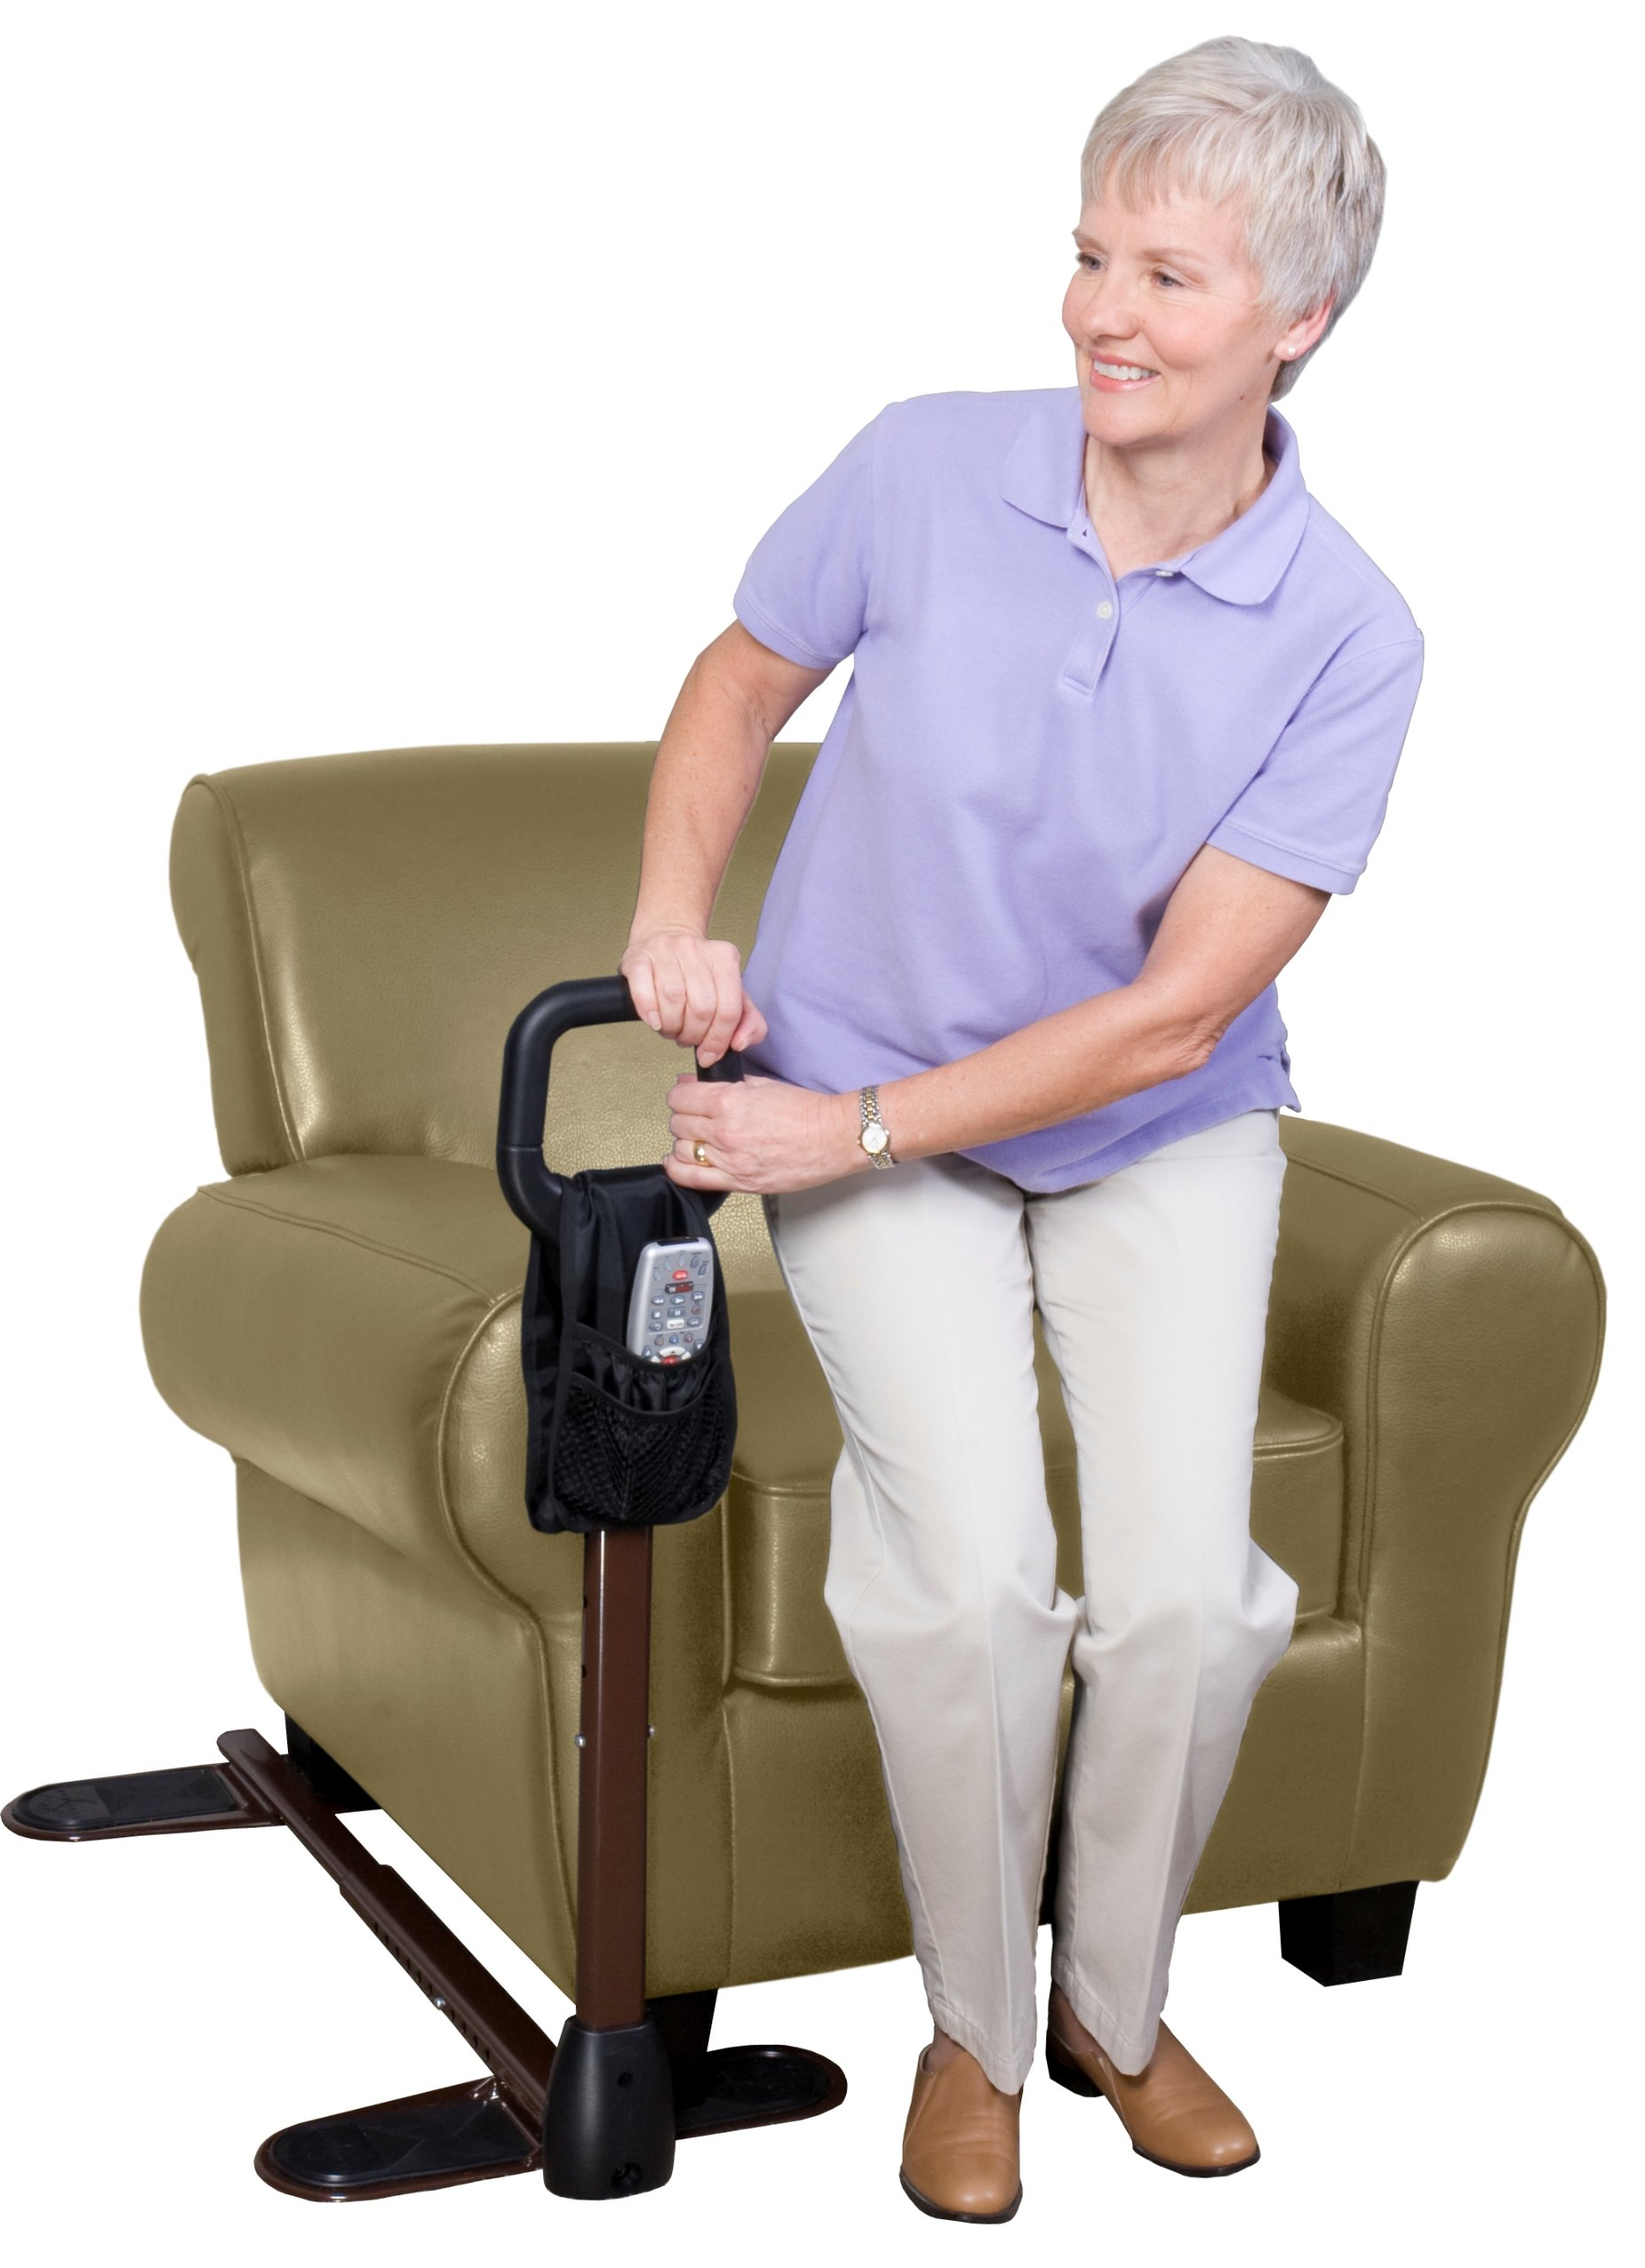 Stander CouchCane -  Ergonomic Safety Support Handle + Adjustable Living Room Standing Aid for Chair Couch & Lift Chair + Organizer Pouch by Stander